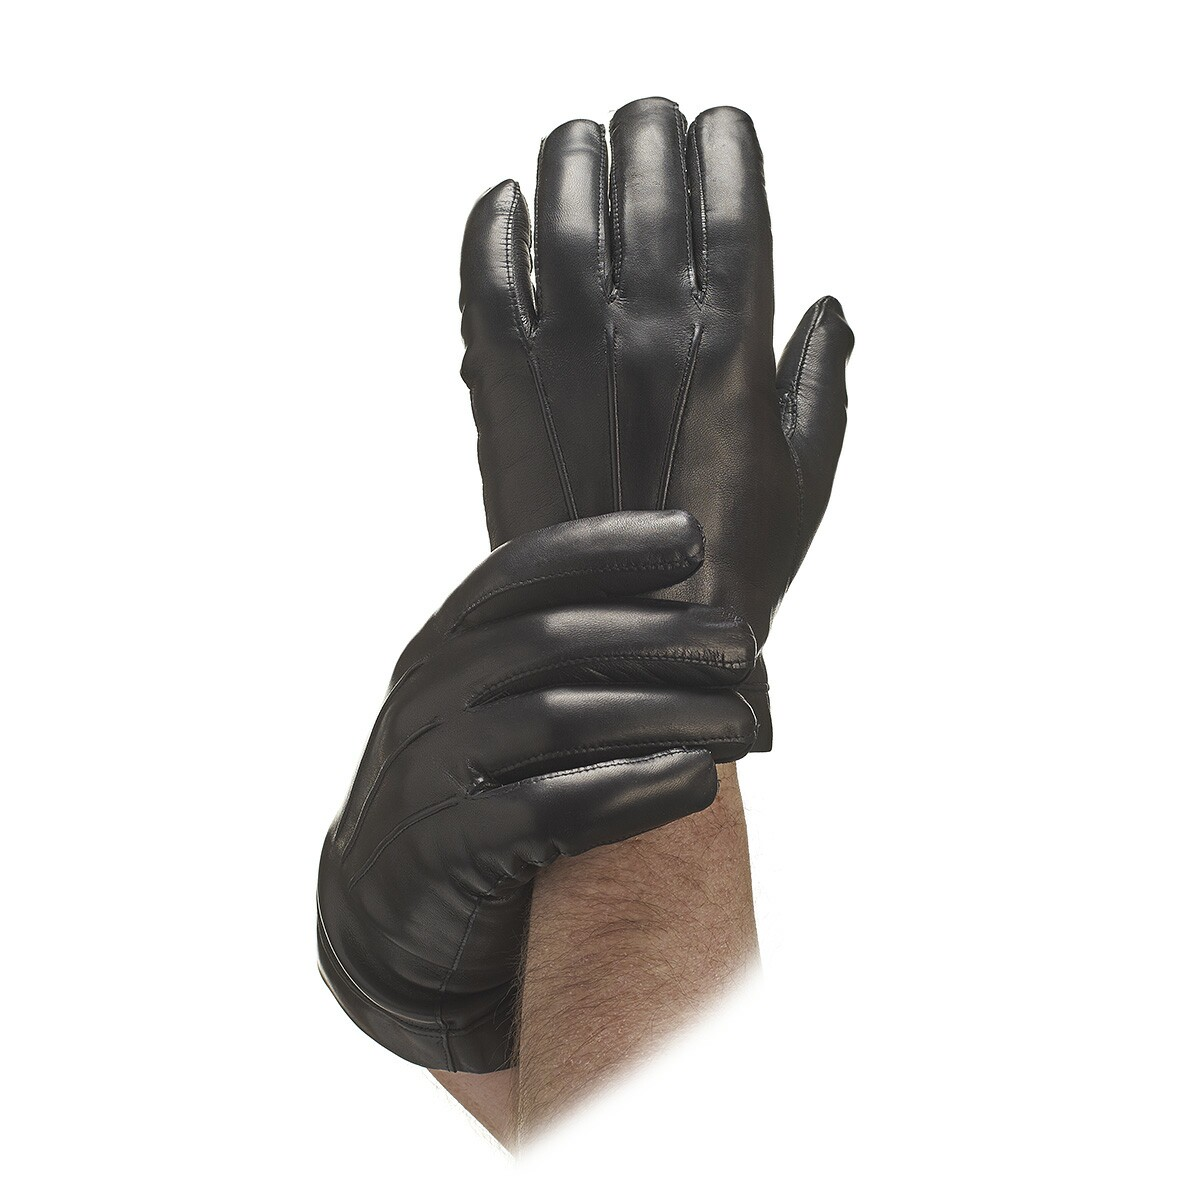 Mens black leather gloves xl - Mens Black Leather Gloves Xl 29